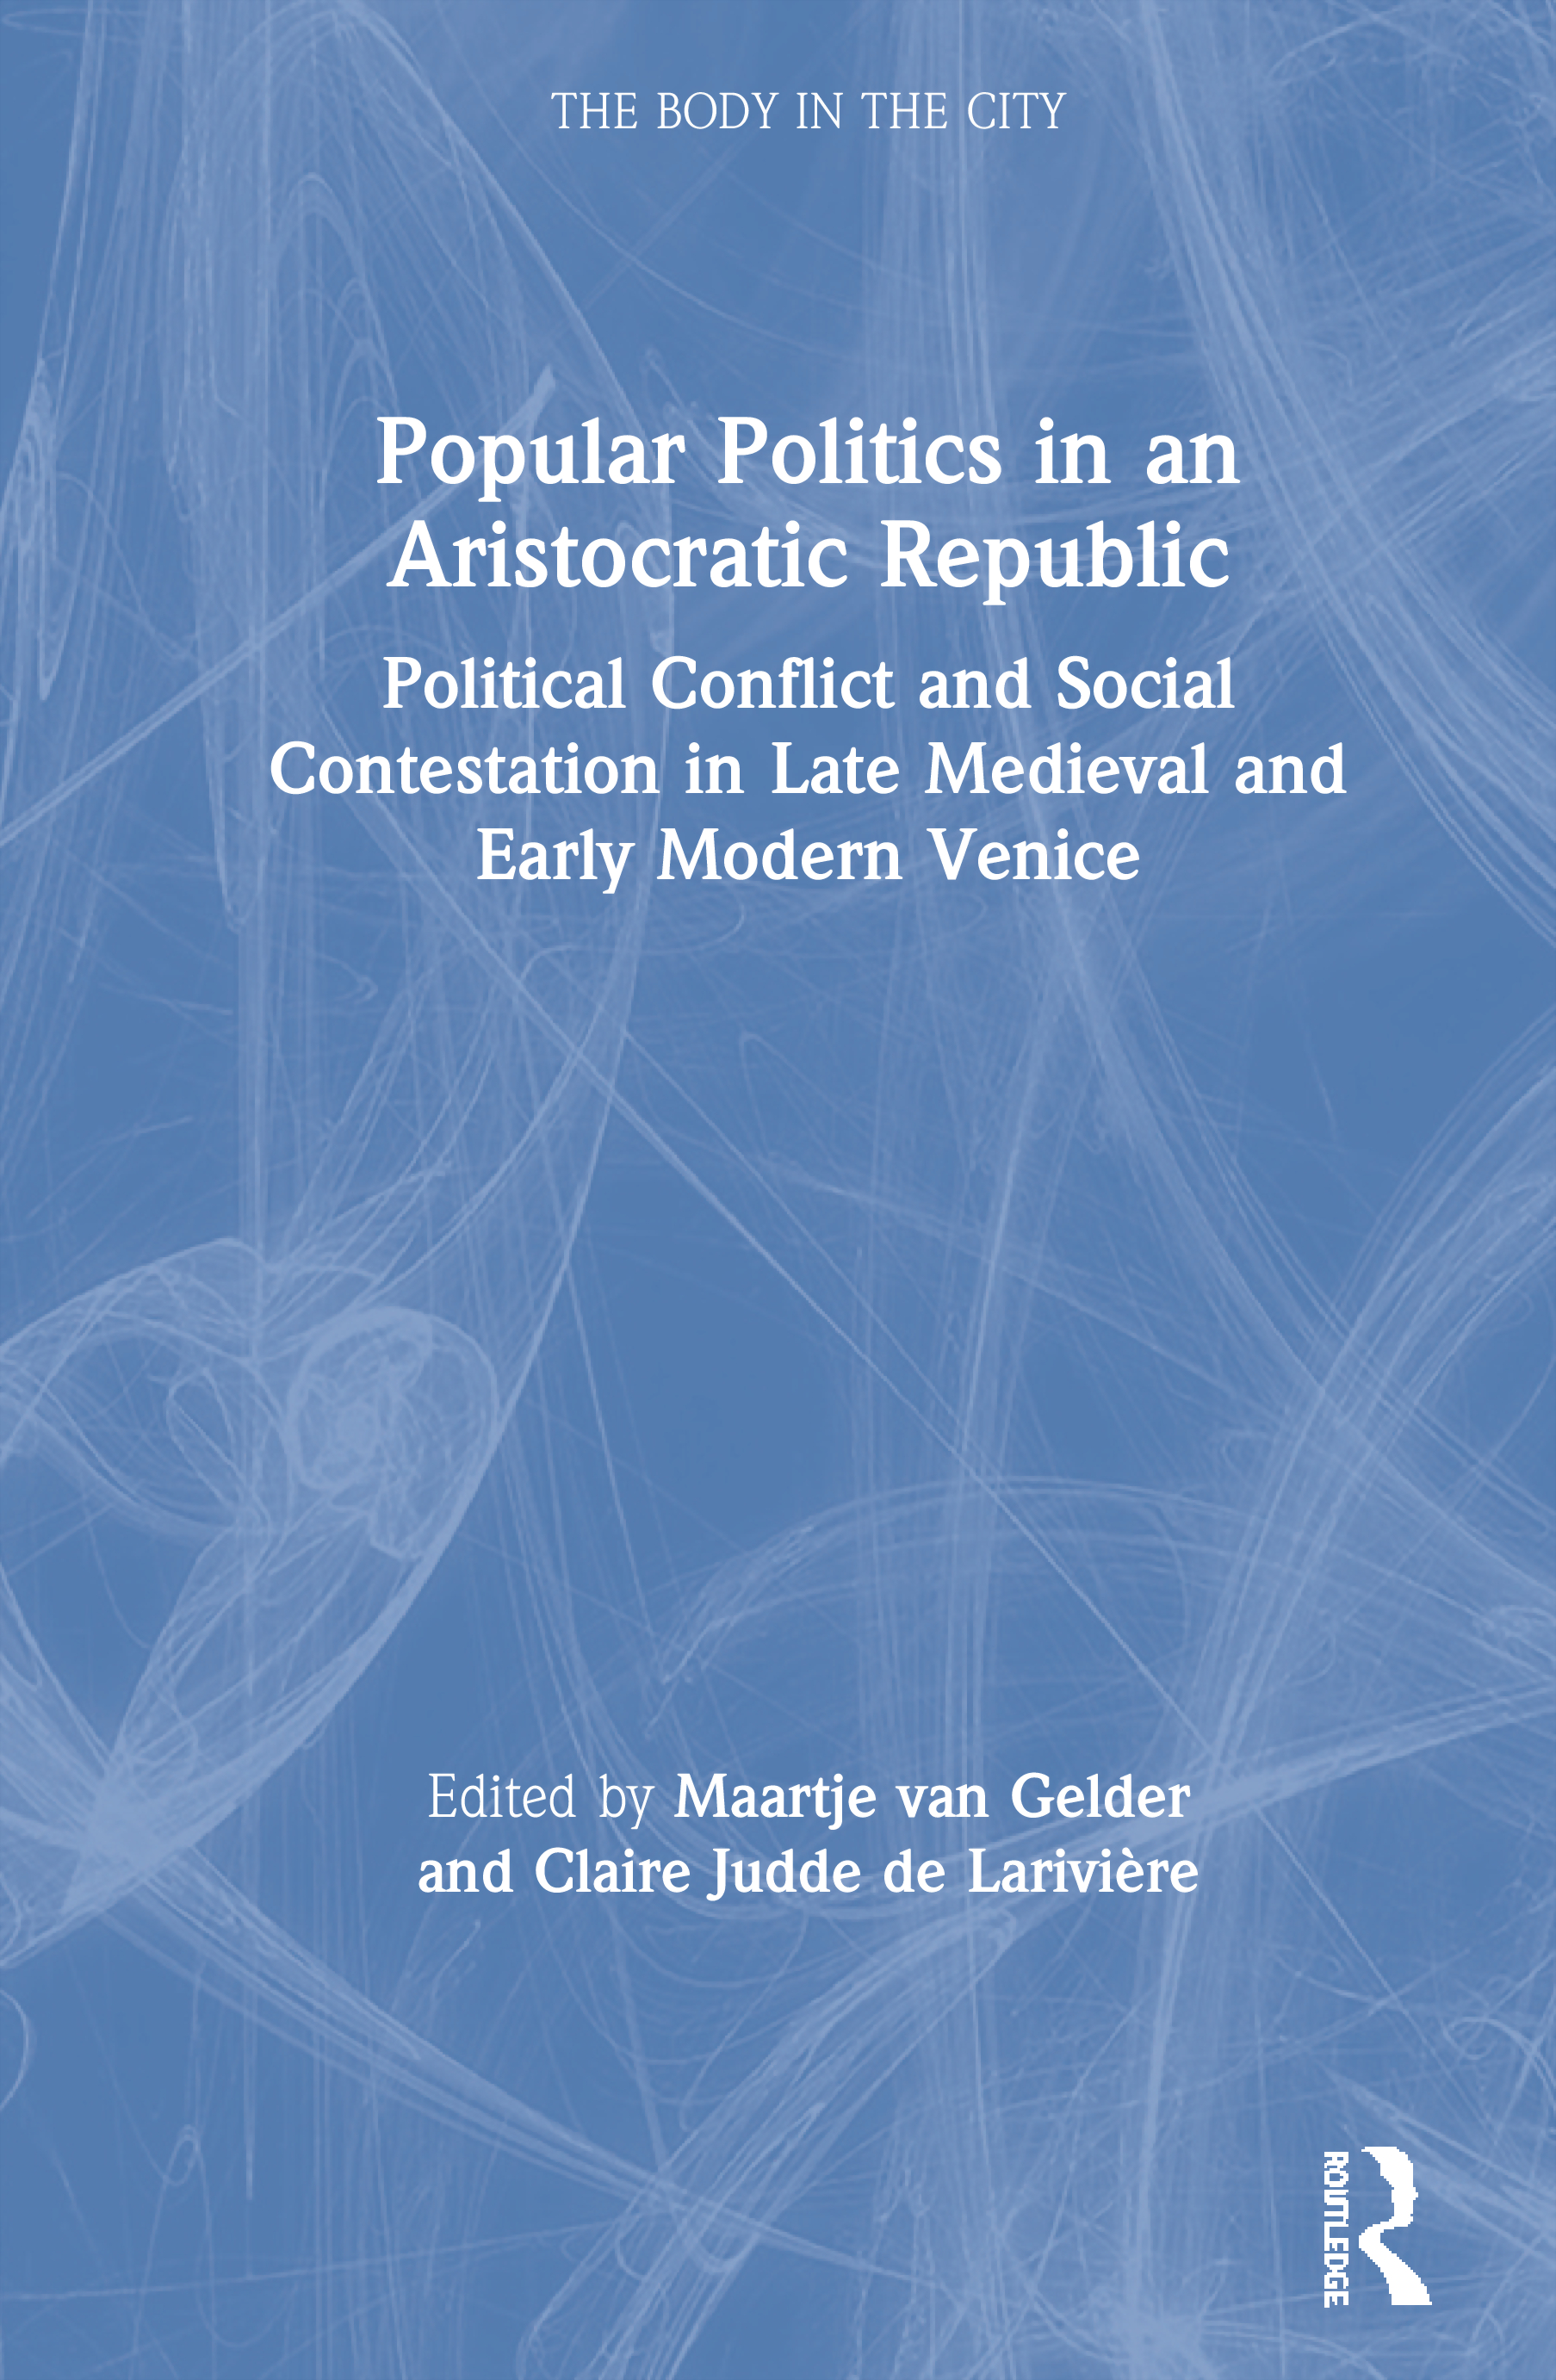 Popular Politics in an Aristocratic Republic: Political Conflict and Social Contestation in Late Medieval and Early Modern Venice, 1st Edition (Paperback) book cover